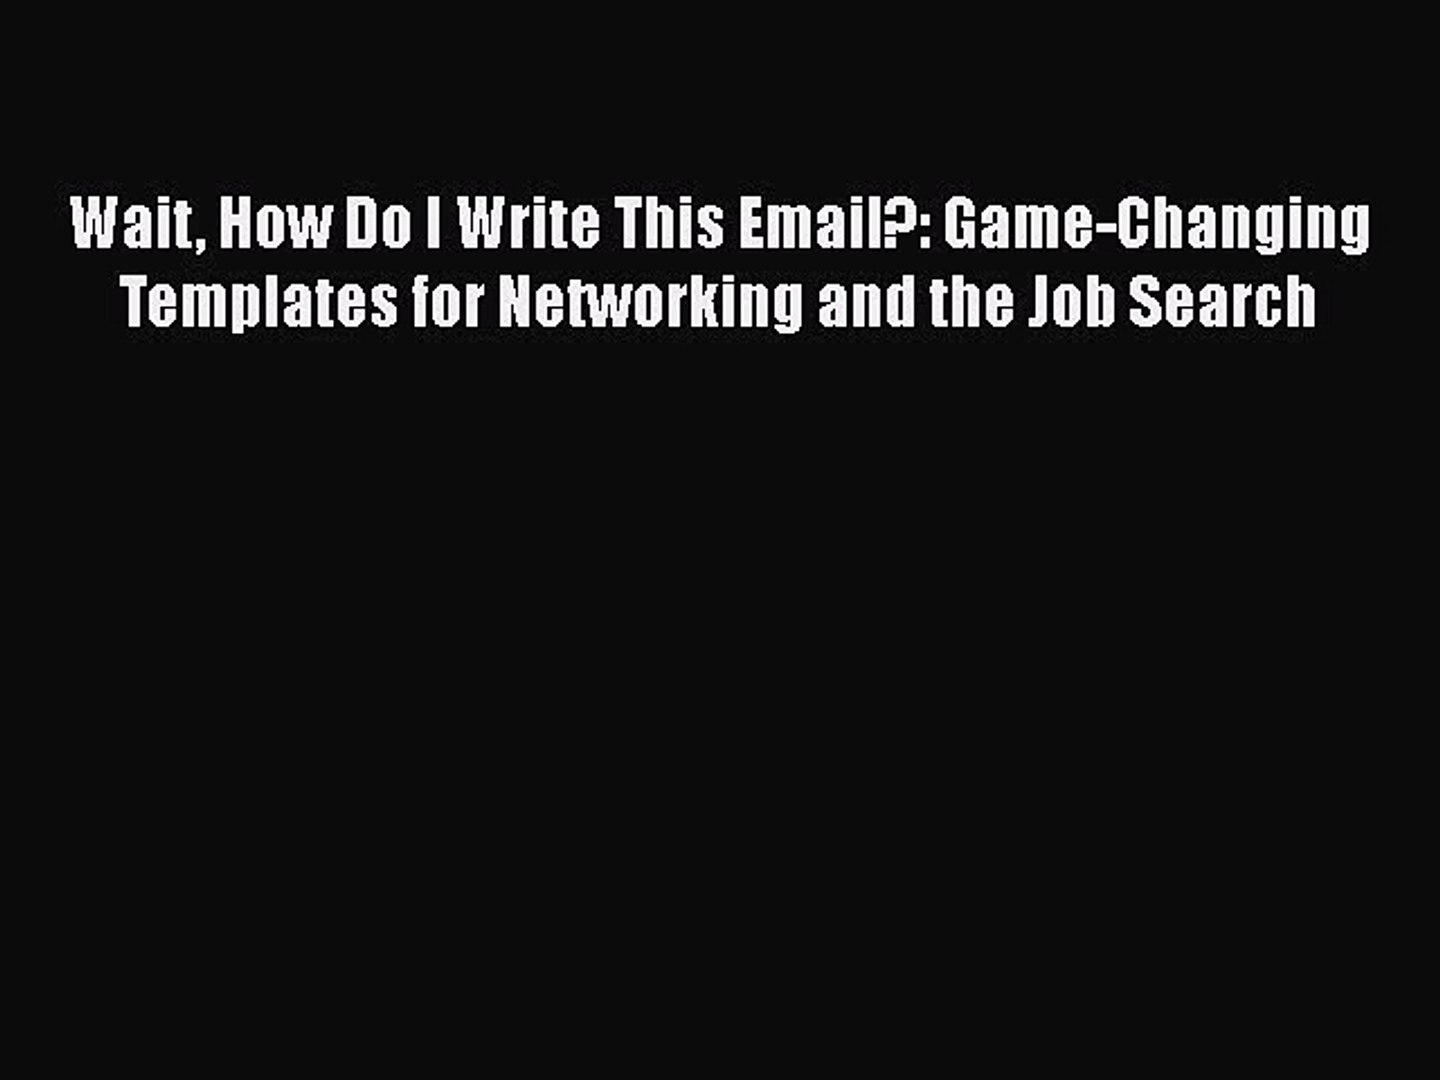 Download Wait How Do I Write This Email?: Game-Changing Templates for Networking and the Job